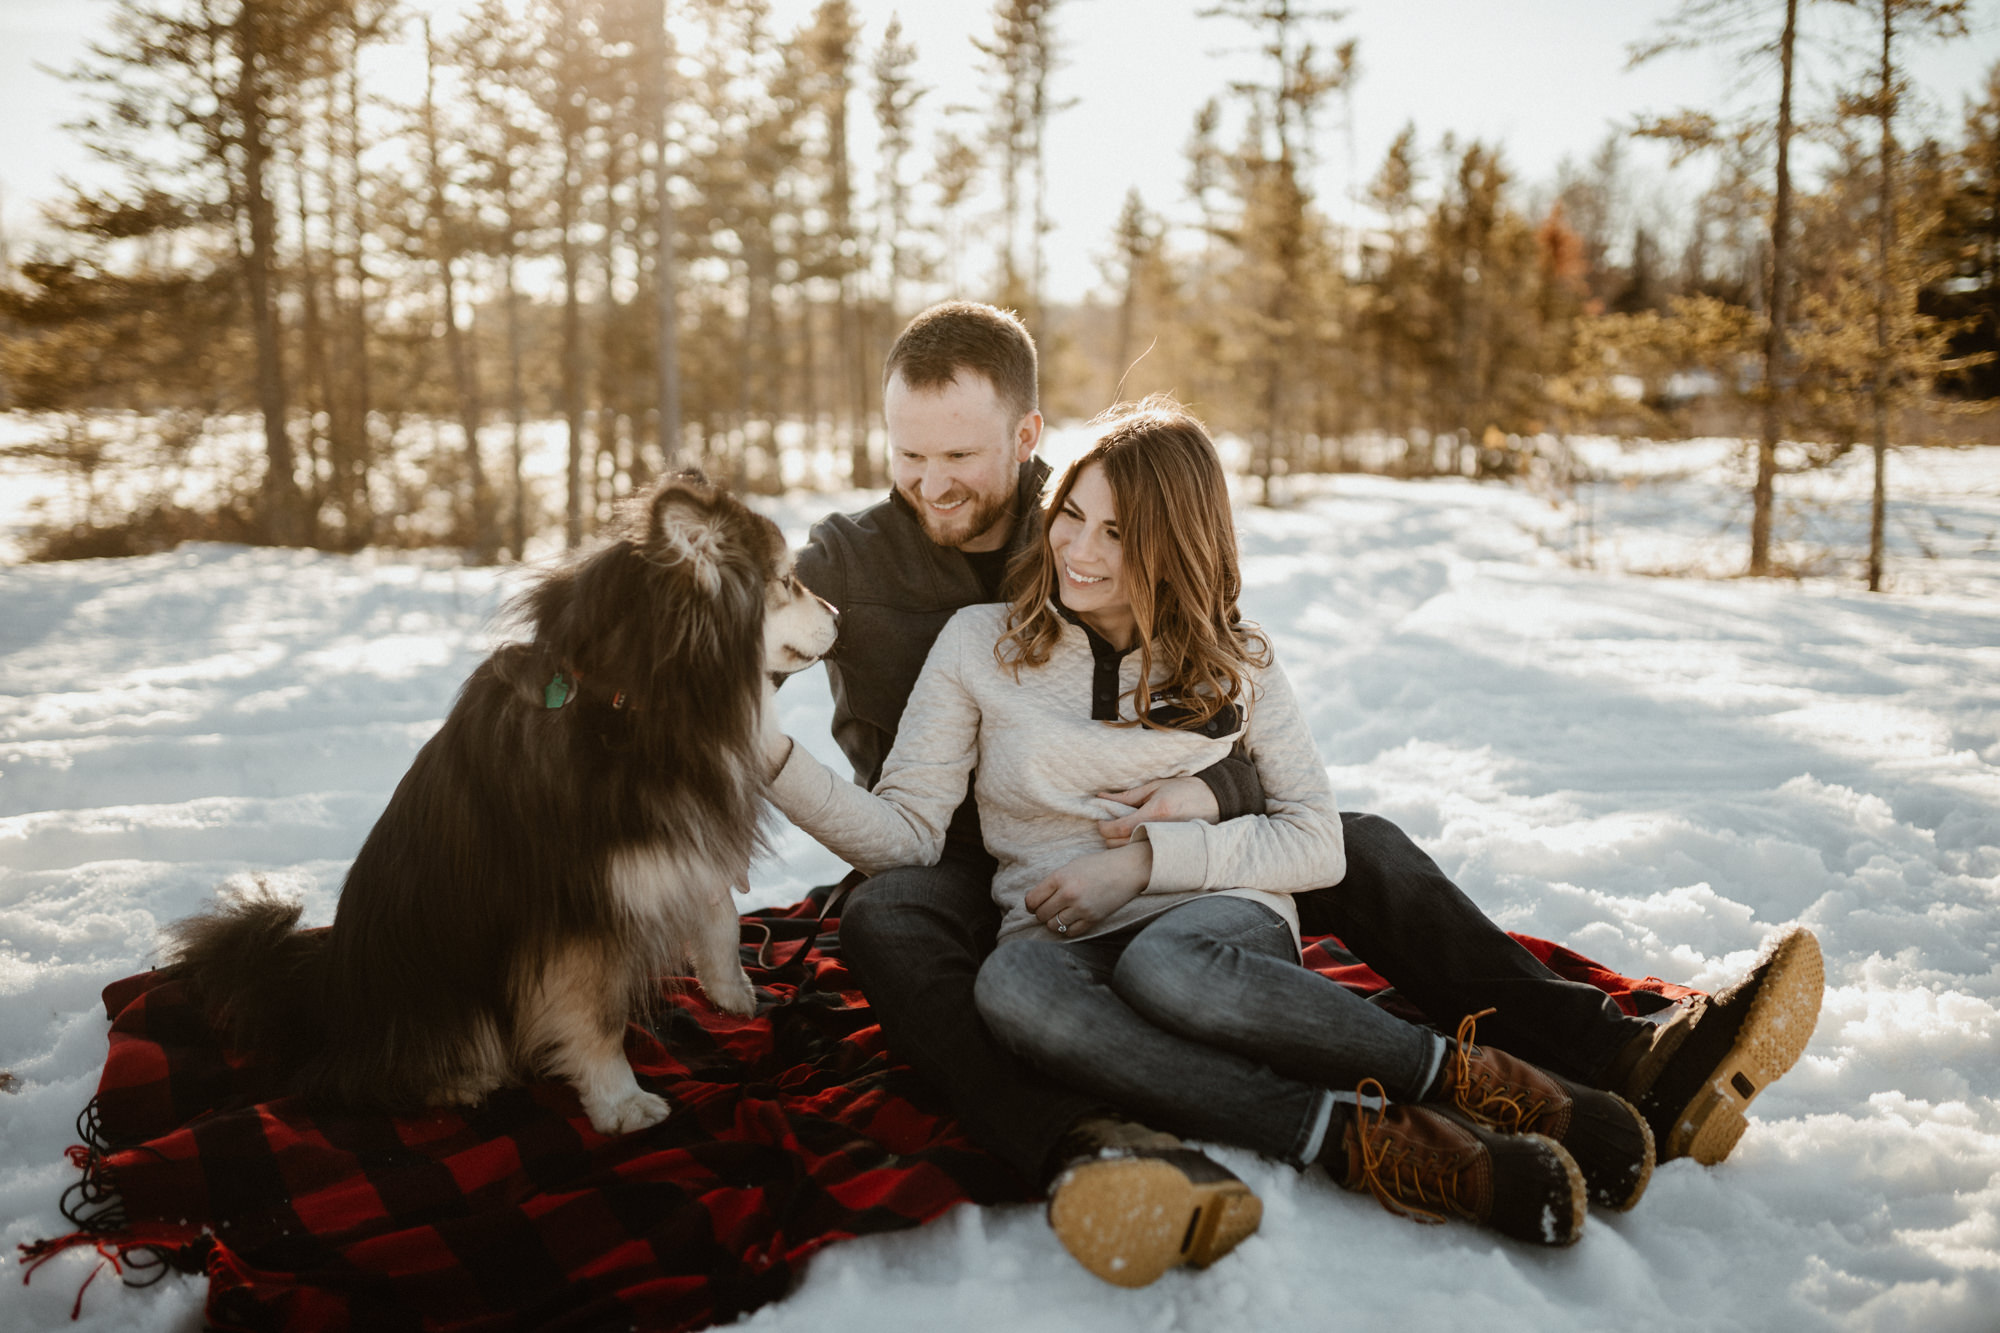 A couple and their Finnish Lapphund sitting on a plaid blanket in the snow.